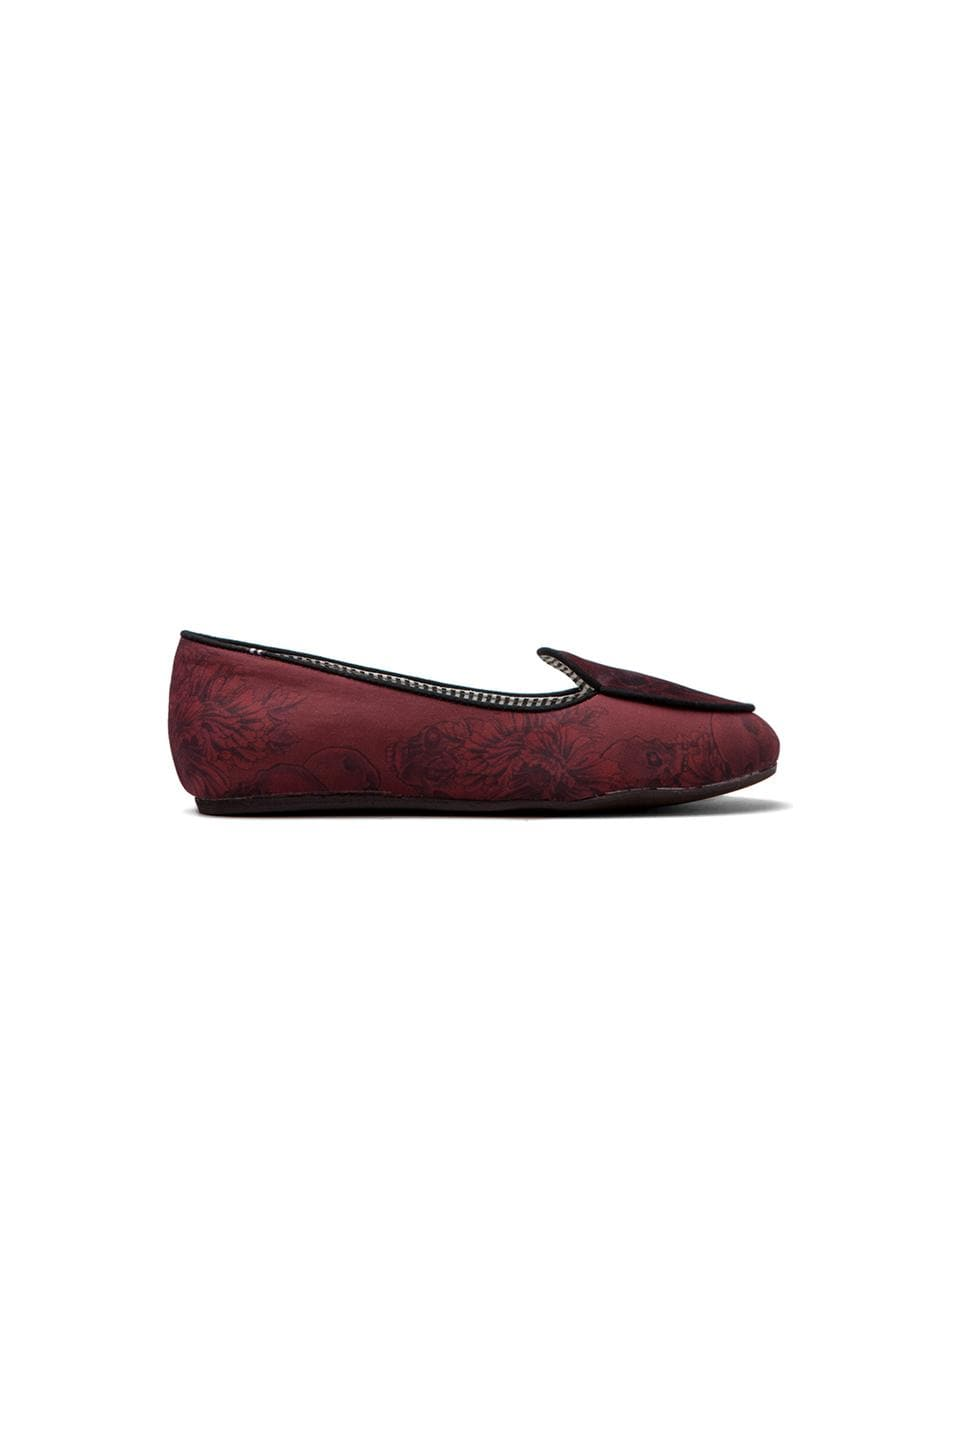 Charles Philip Shanghai Olimpia Flat in Skull Red/Black